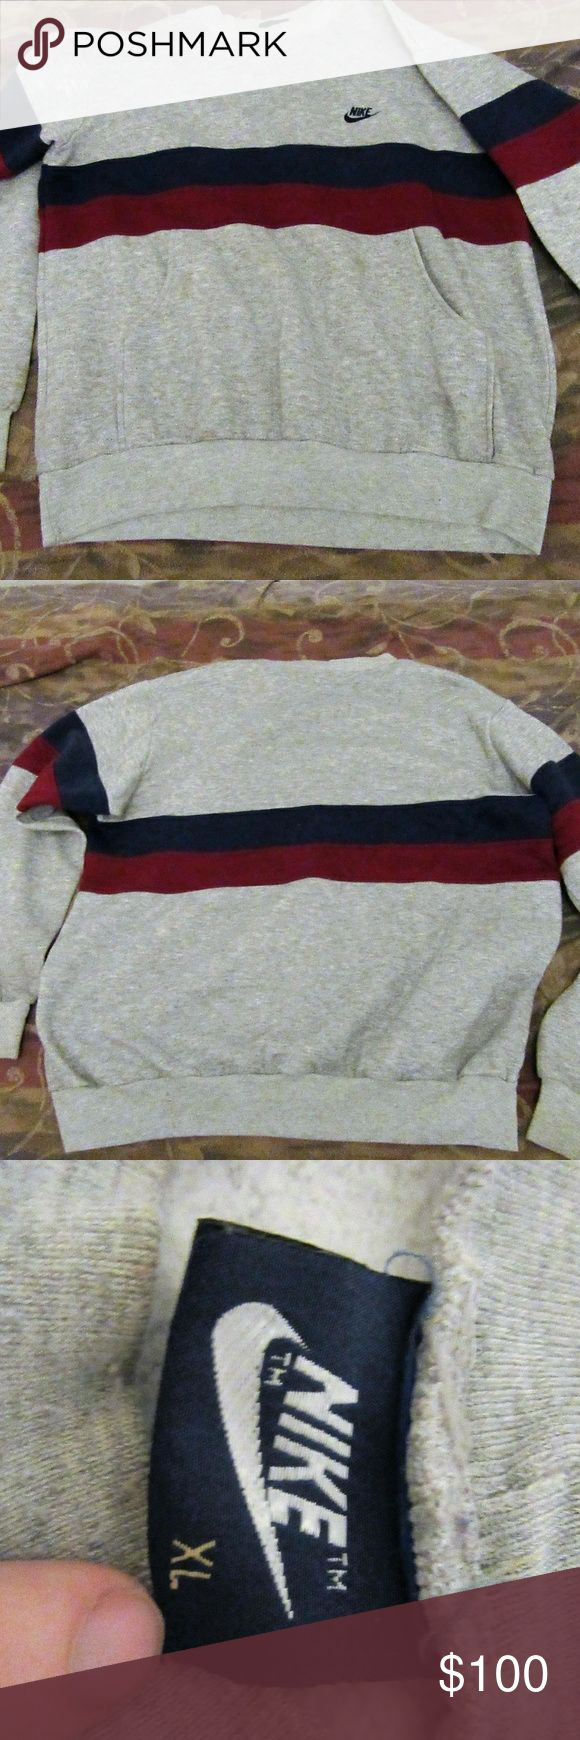 vintage nike blue label color block grey blue red good shape: has some stains spots that could be washed out  vintage nike blue label color block grey blue red sweater pullover XL  pit to pit 24  shoulder to cuff 25  shoulder to shoulder 21  top to bottom 26 Vintage Sweaters